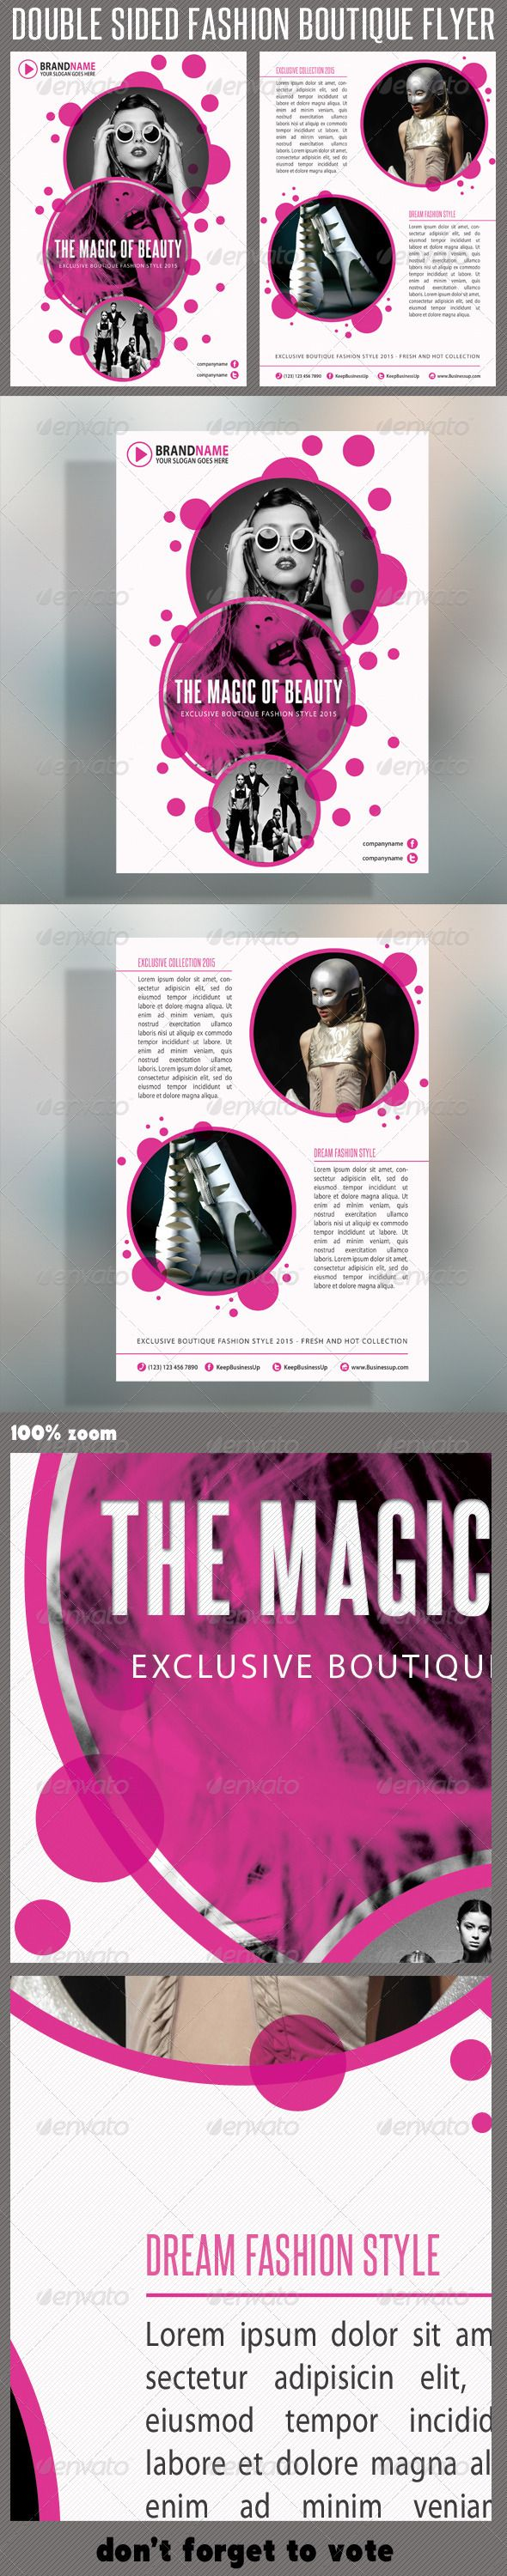 Fashion Product Flyer 02 Business Company Template And Fonts